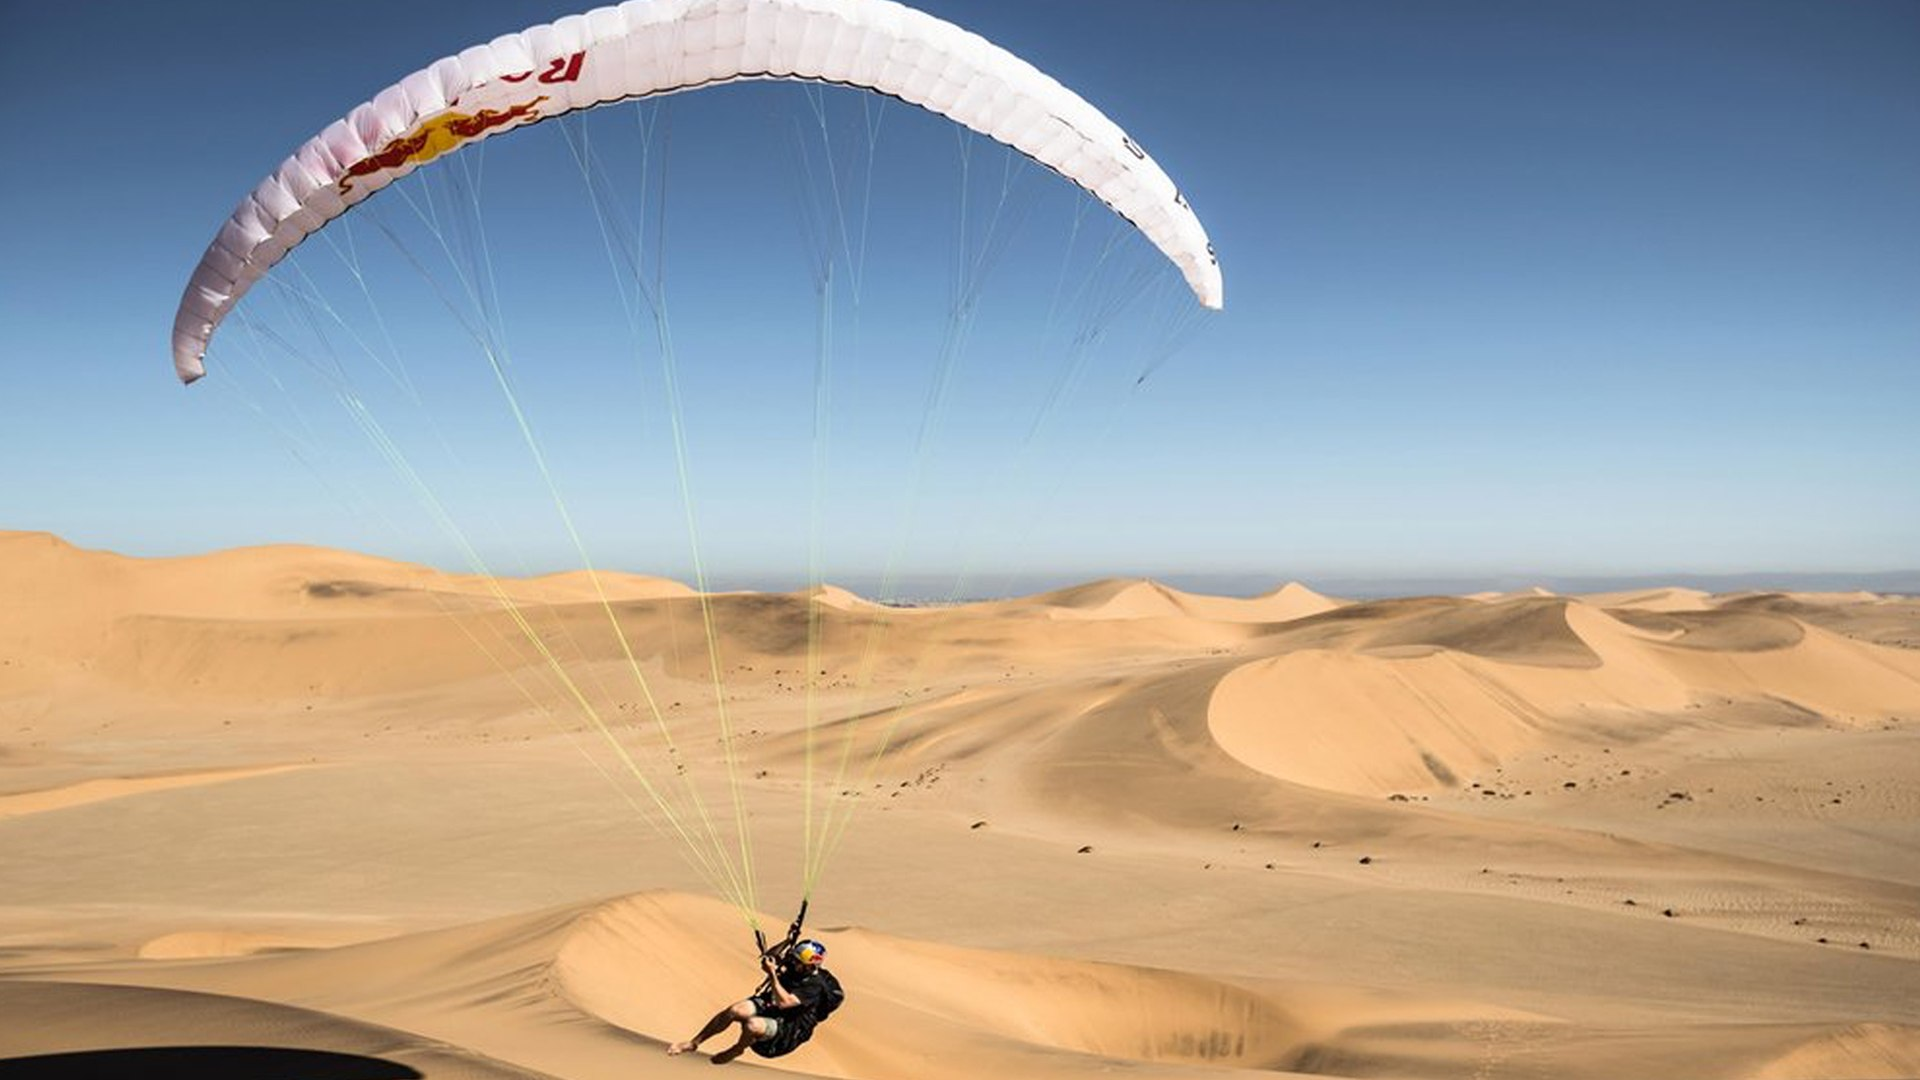 Acrobatic Paragliding the Huge Sand Dunes of Namibia